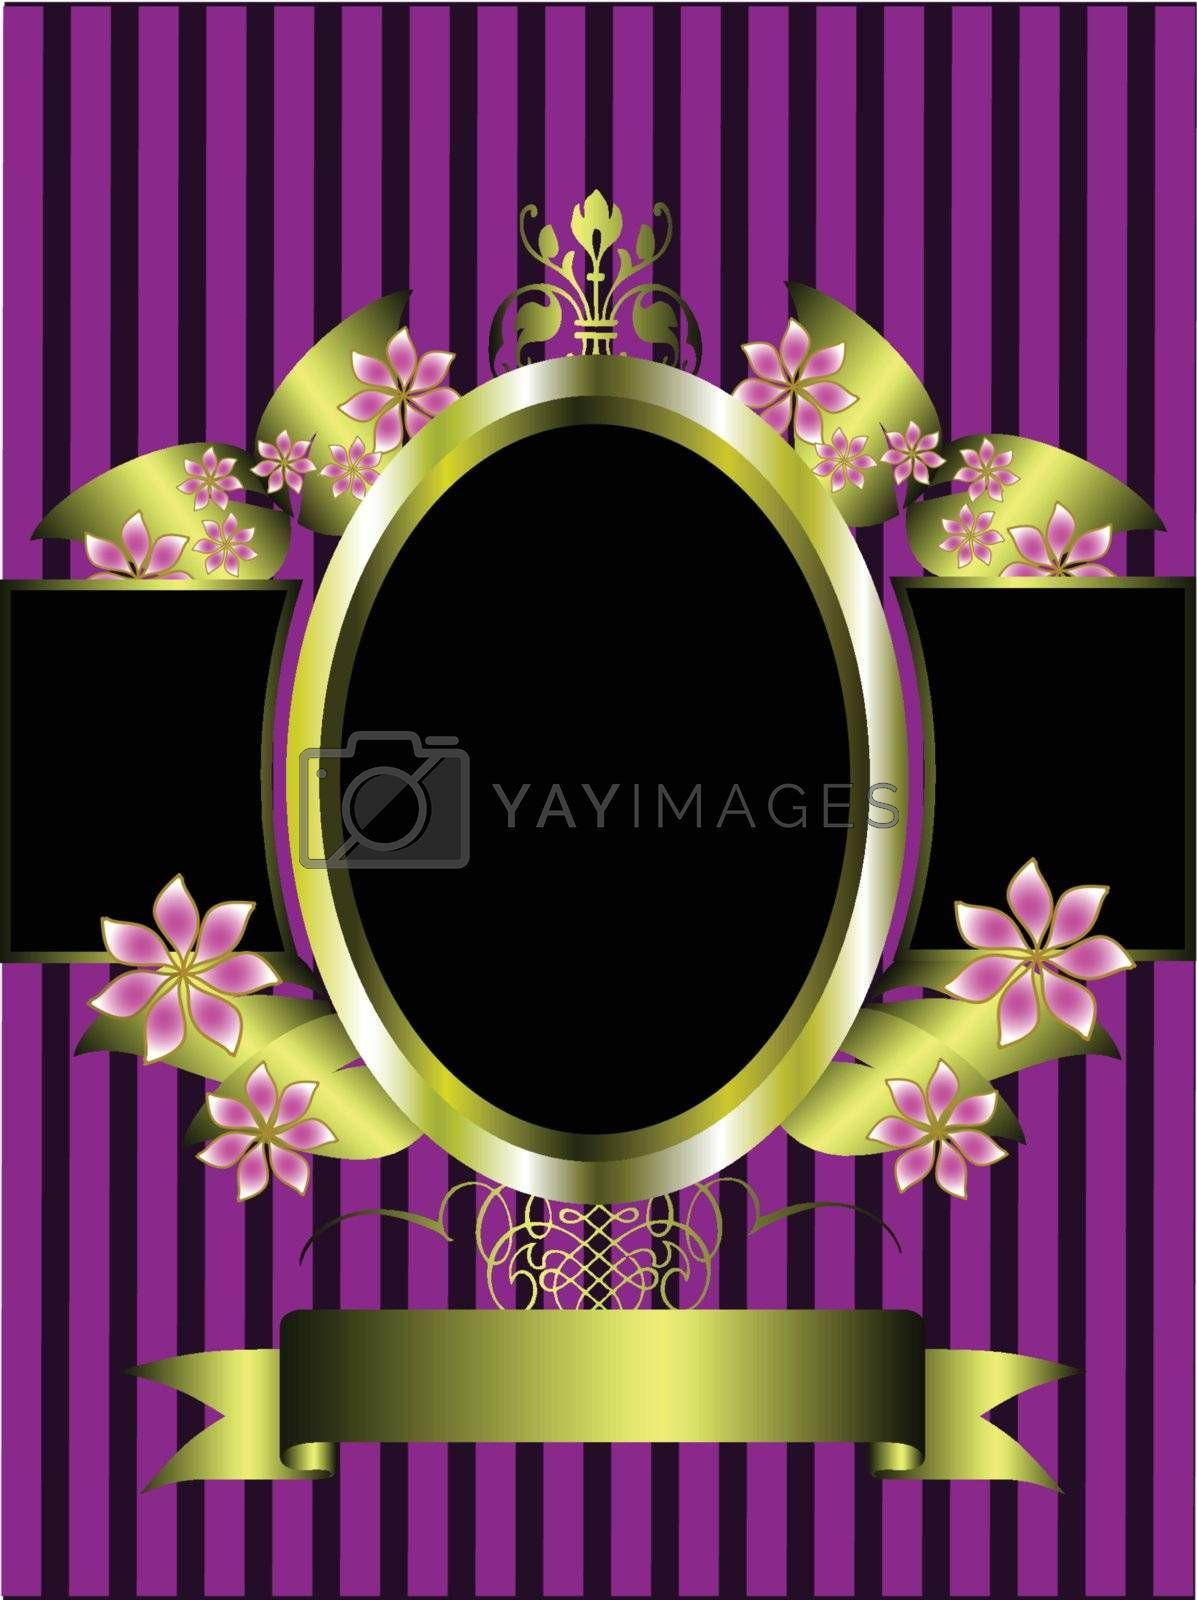 Royalty free image of  gold floral frame on a classic purple striped  background by mhprice